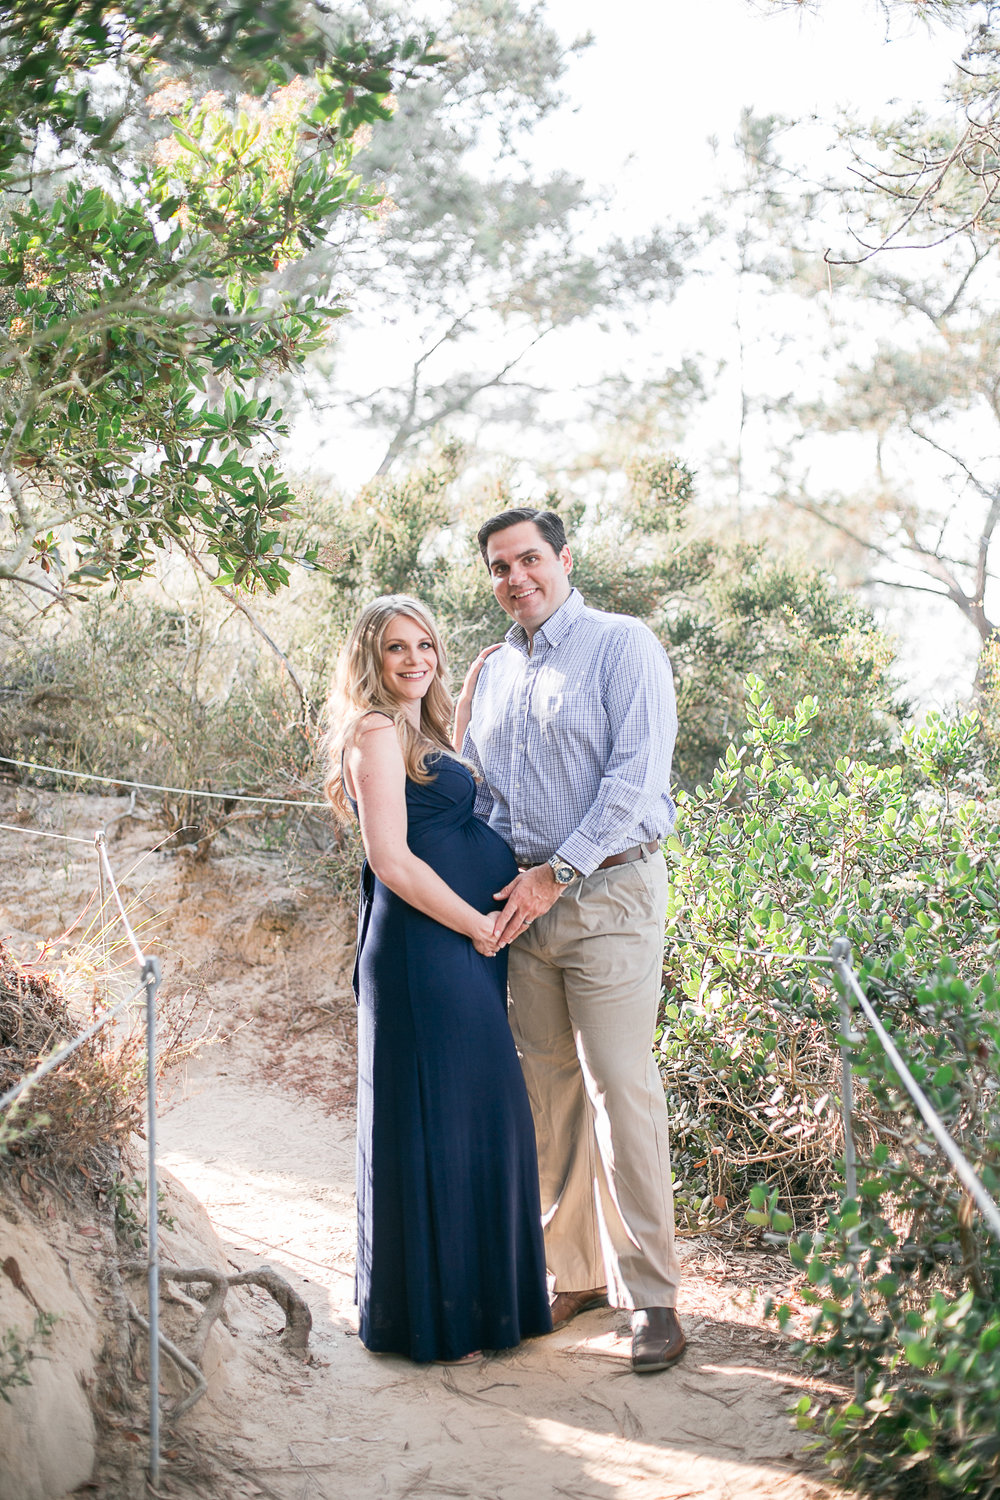 Shane_&_Shayna_Torrey_Pines Maternity_Session_2017-2.jpg